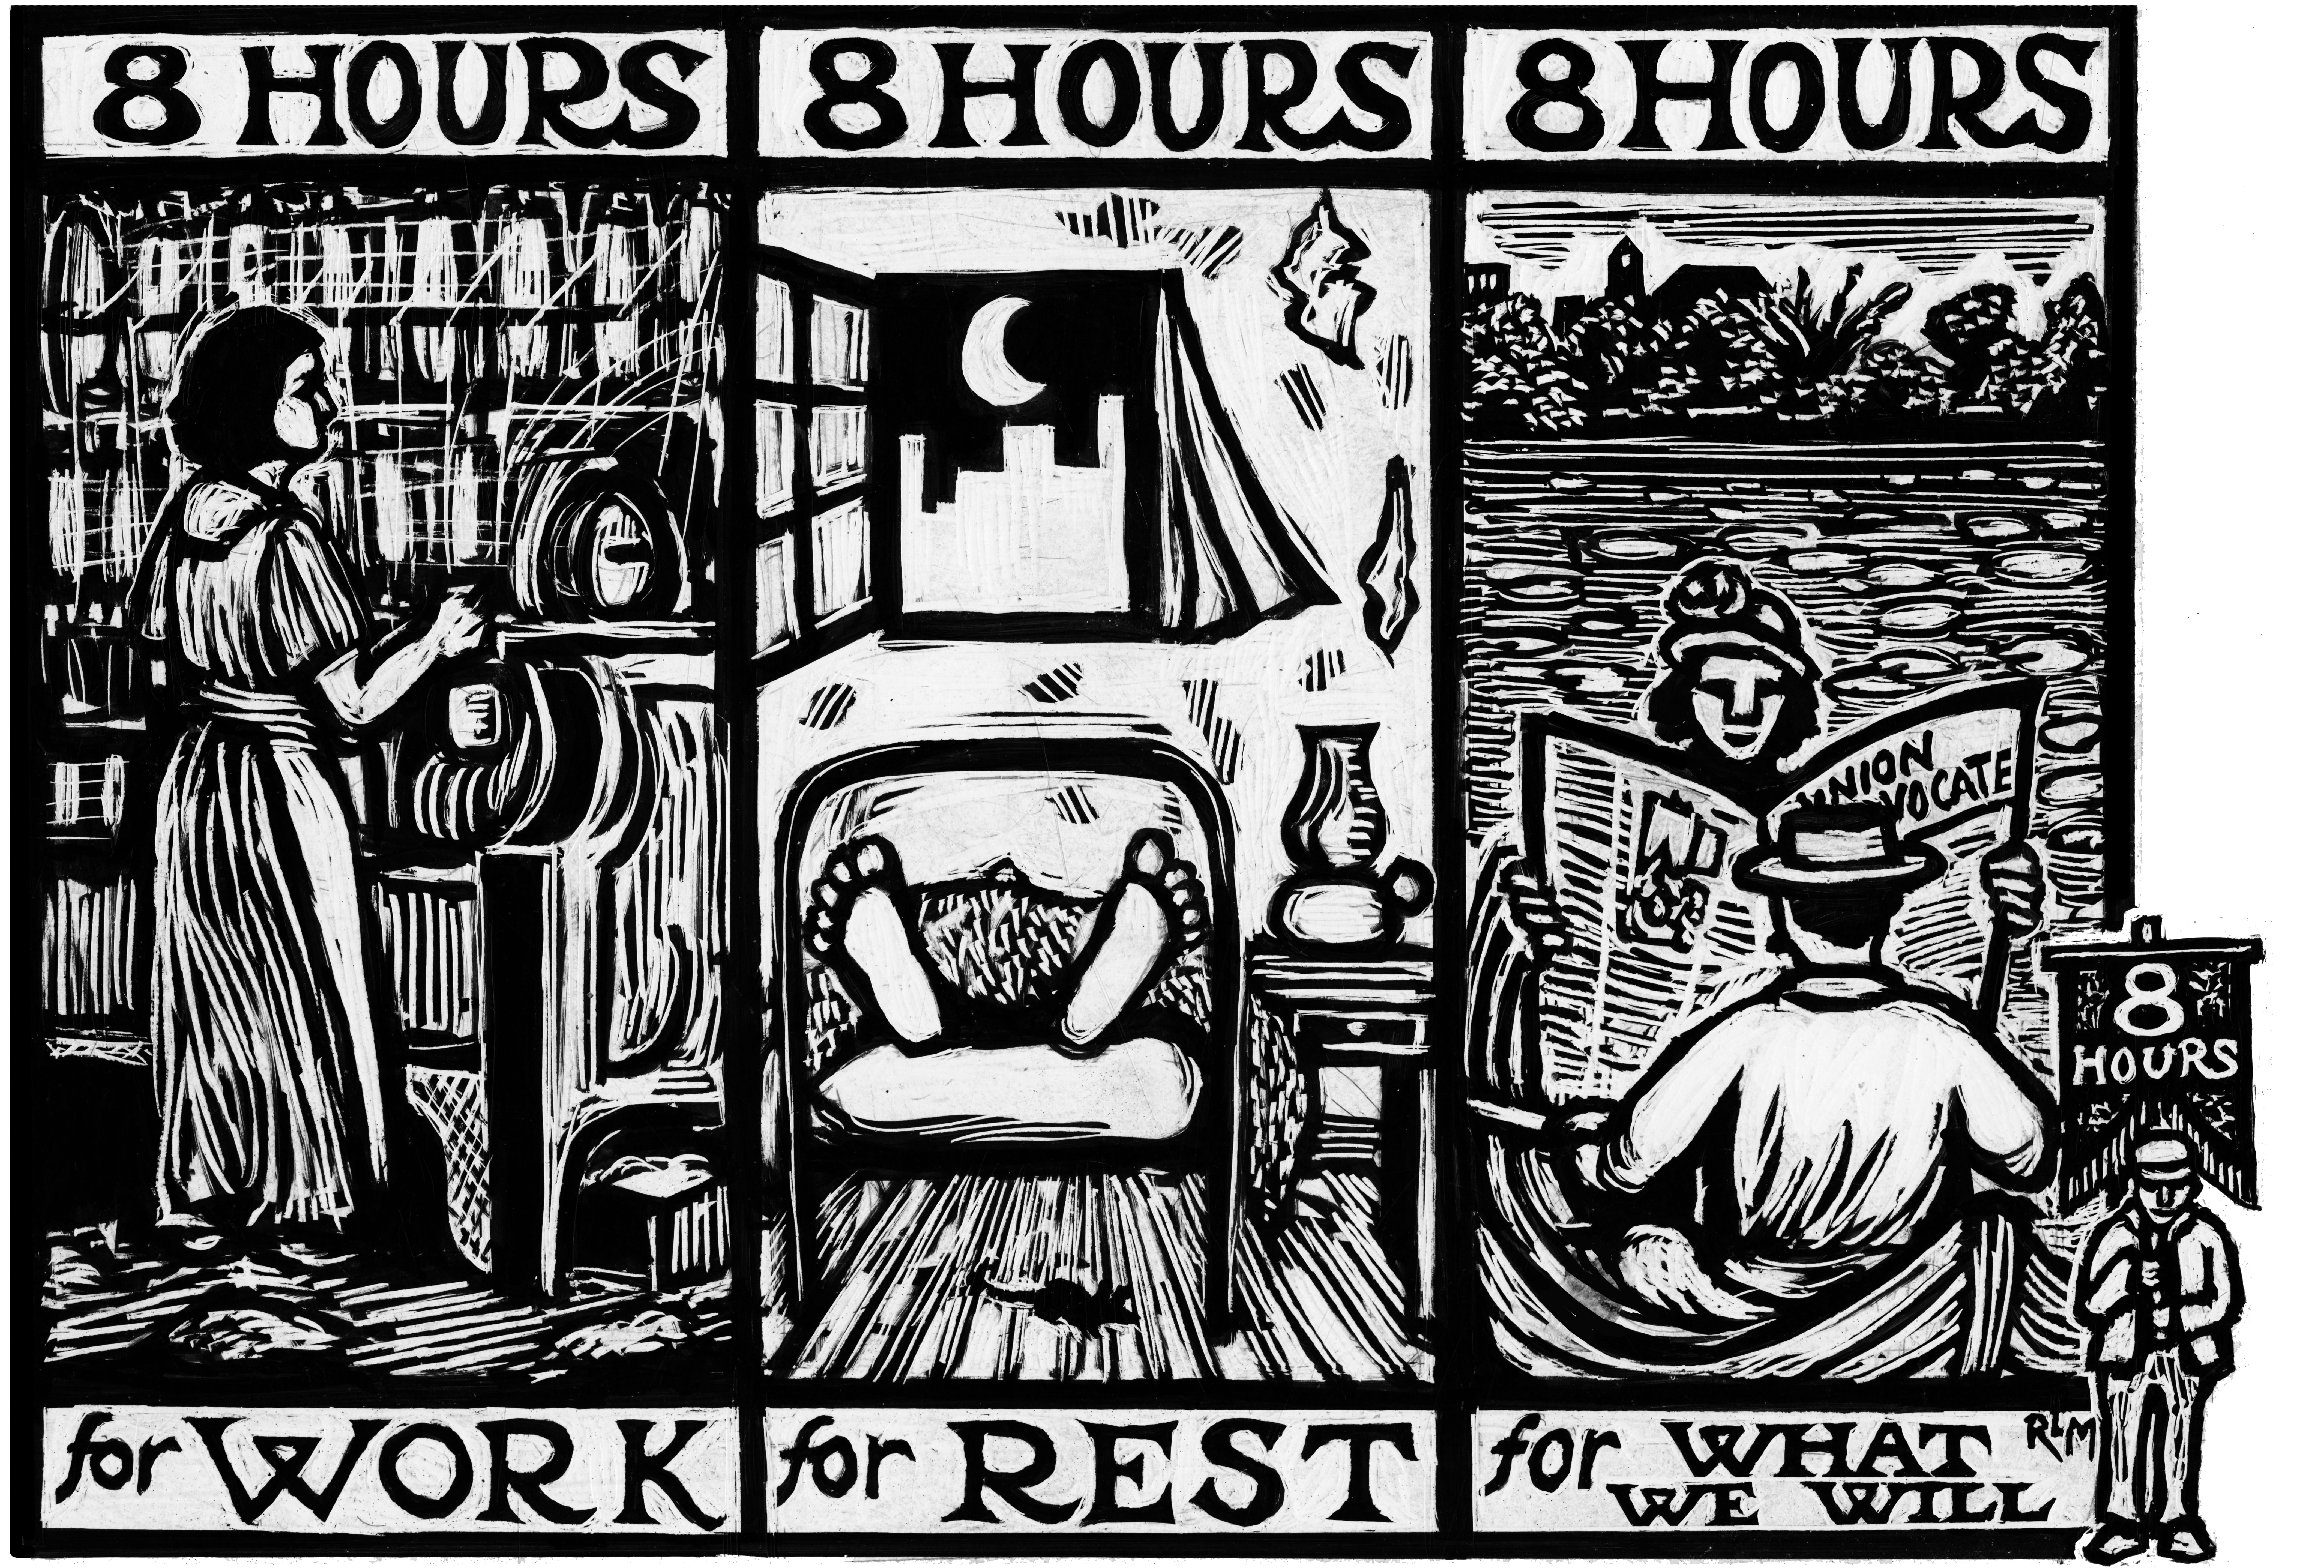 May 1, International Workers' Day